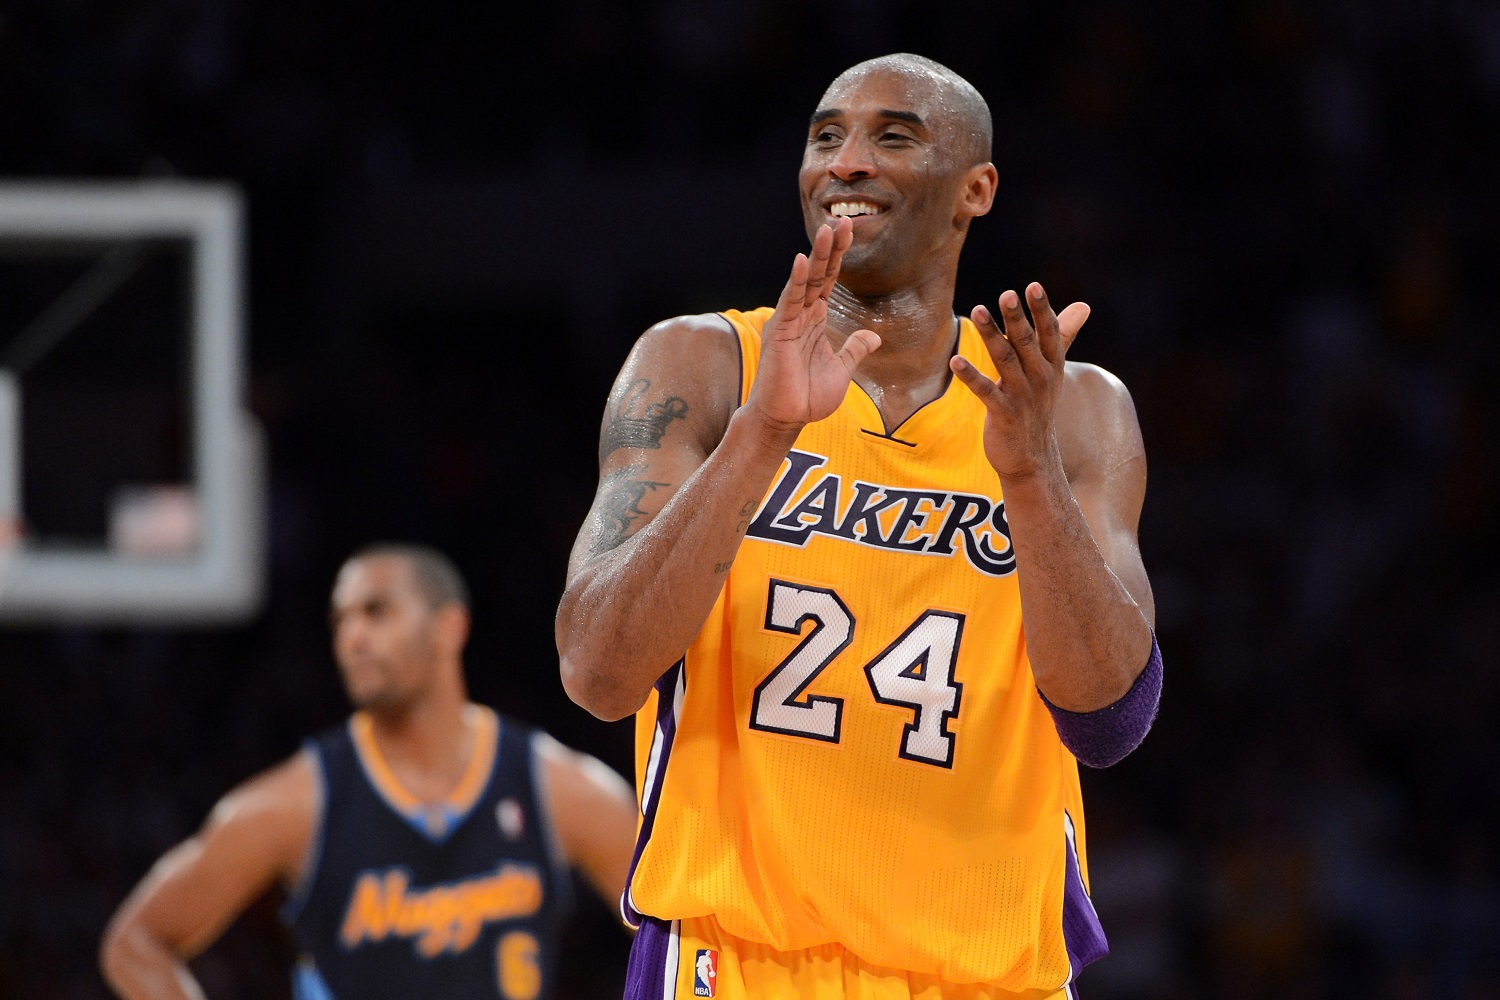 Kobe Bryant grew up in Italy, where he spent some of his time playing soccer. Bryant credited that sport with improving his vision for making plays on the basketball court. | Harry How/Getty Images